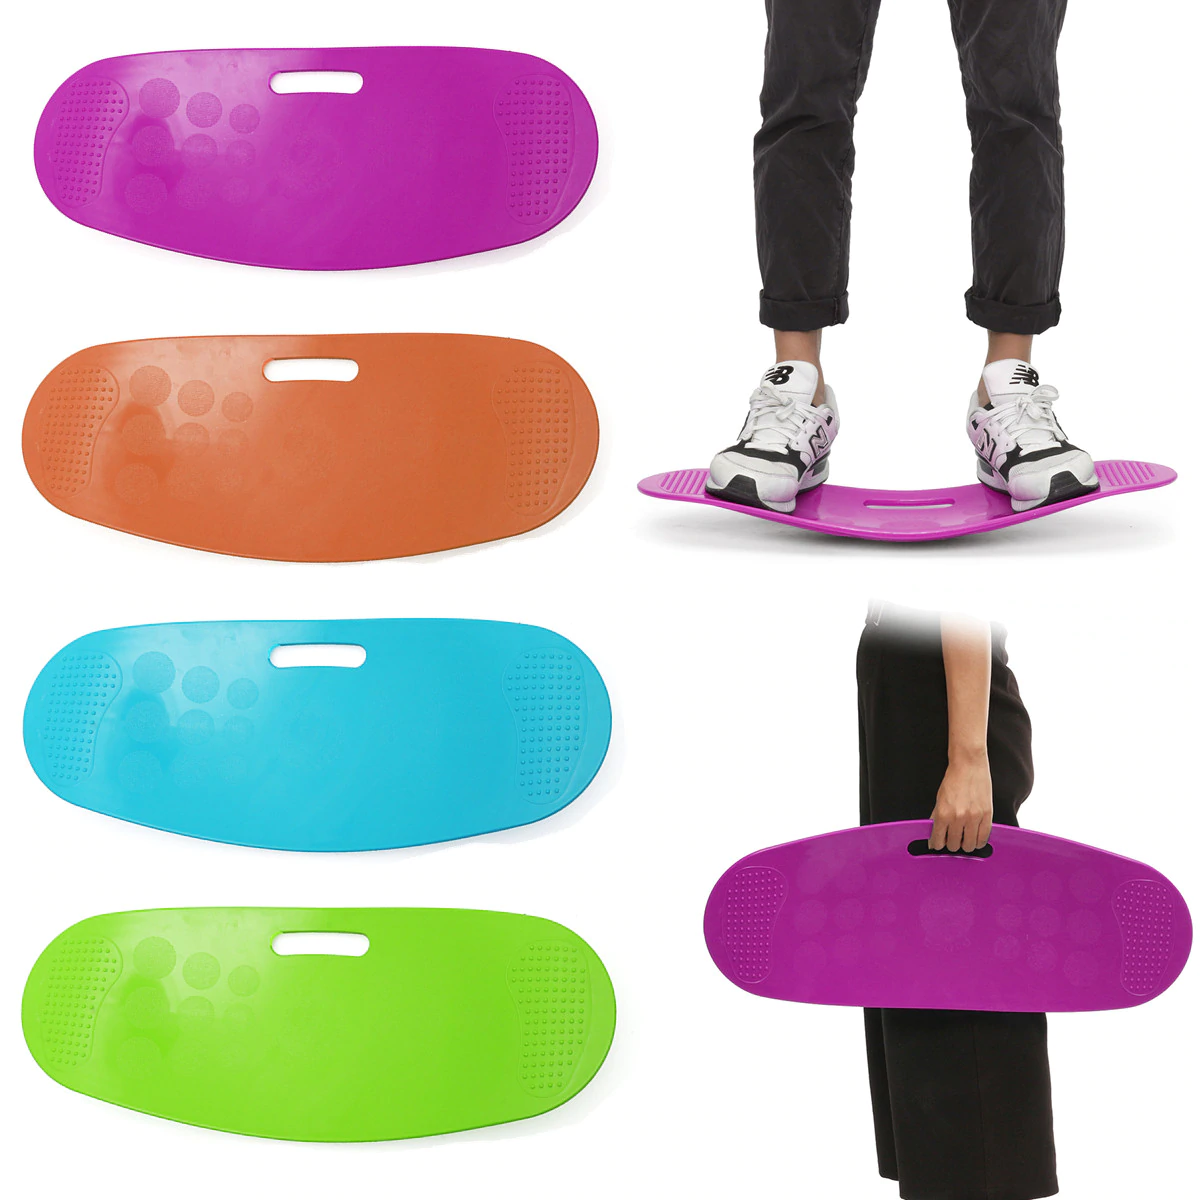 Fitness Yoga Balance Board Wobble Board Rocker Board for Exercises